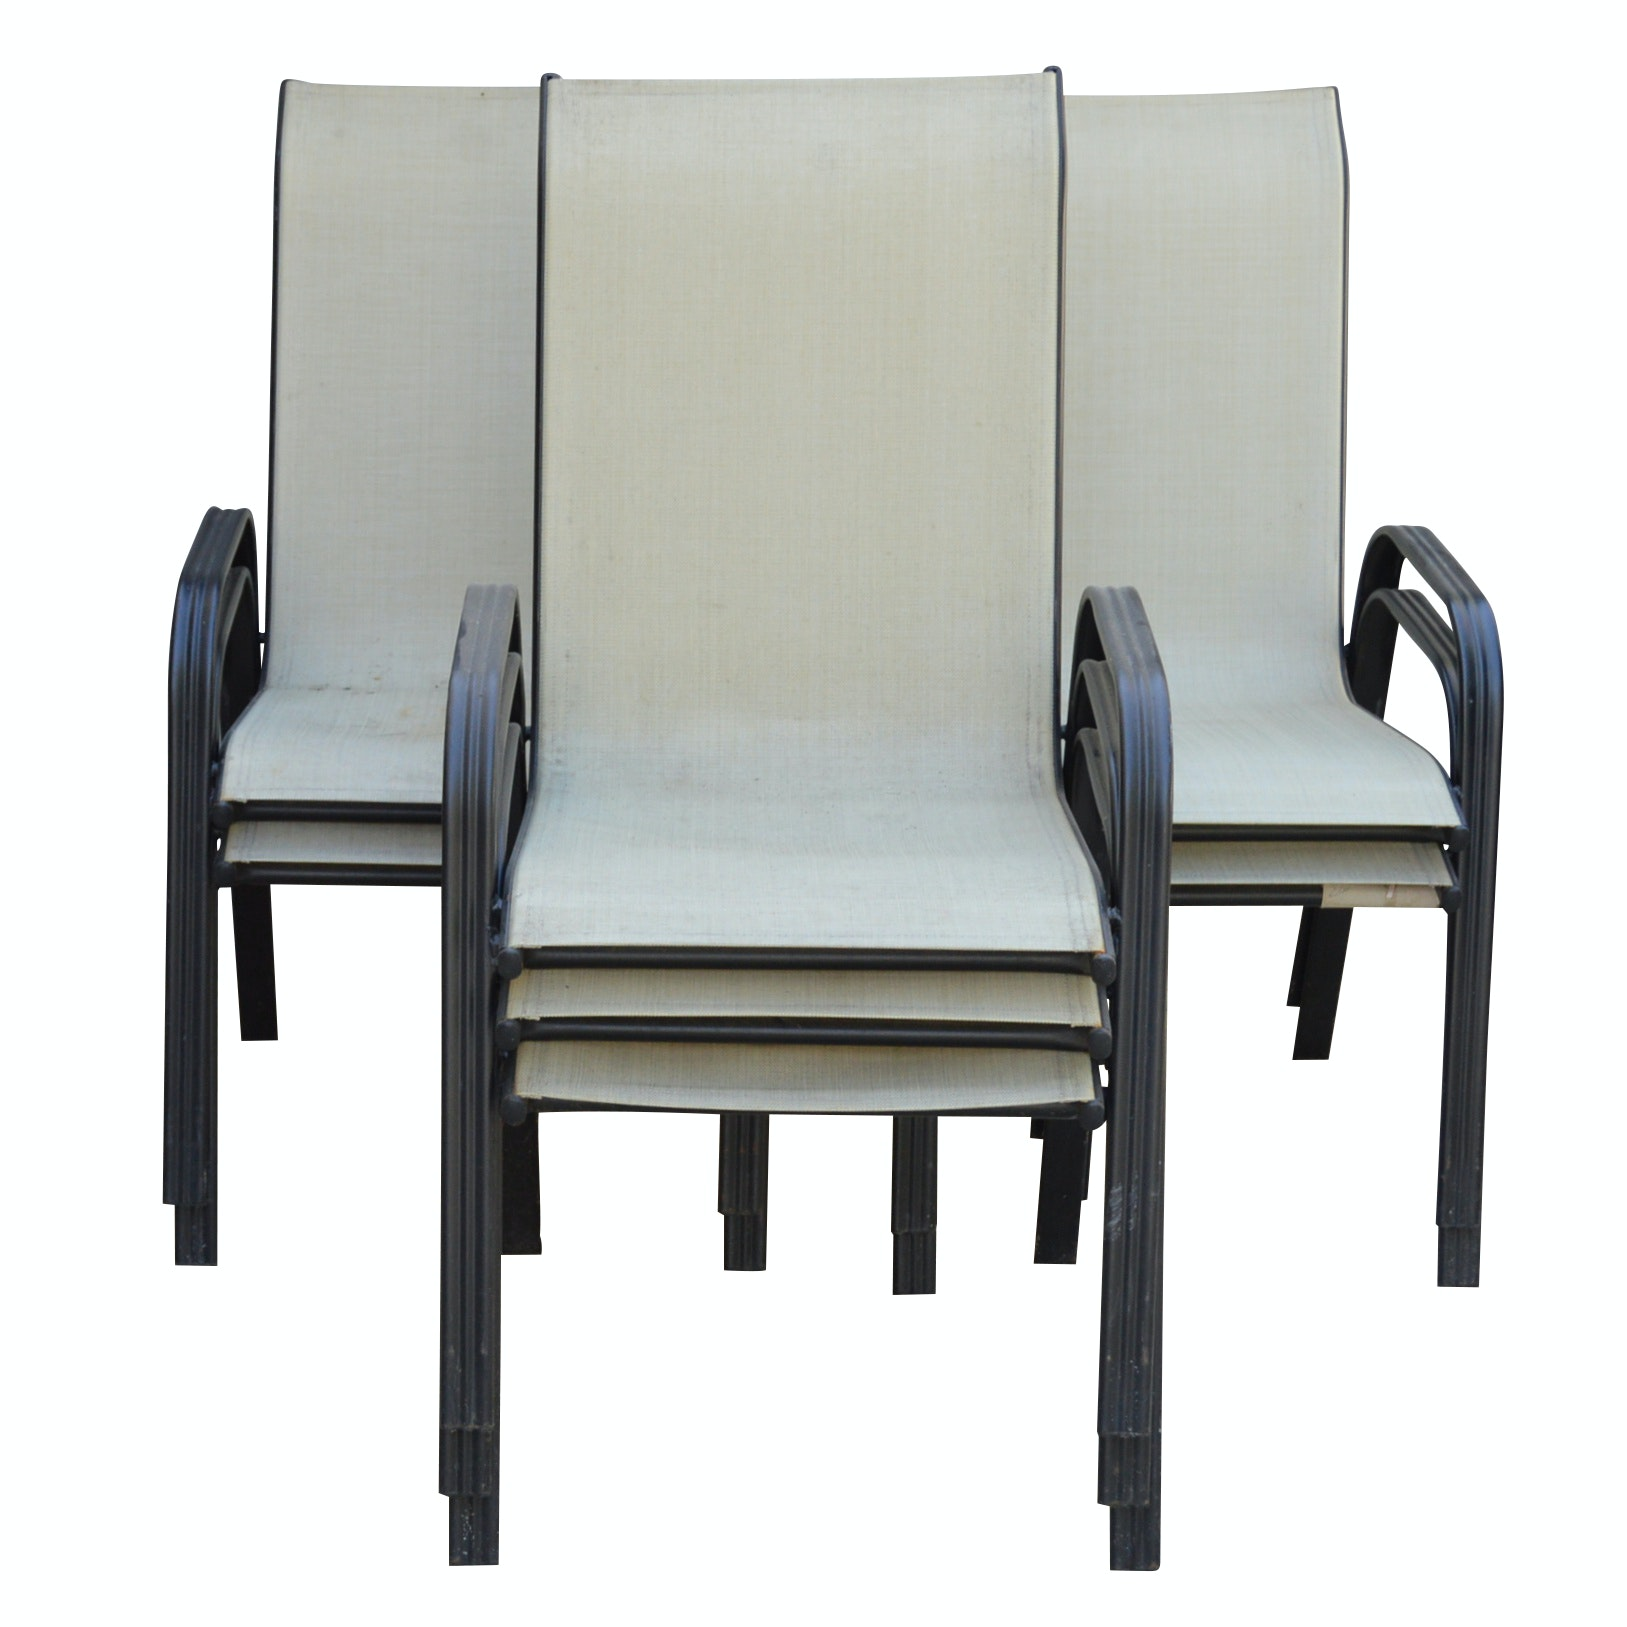 Seven Mesh and Metal Patio Chairs